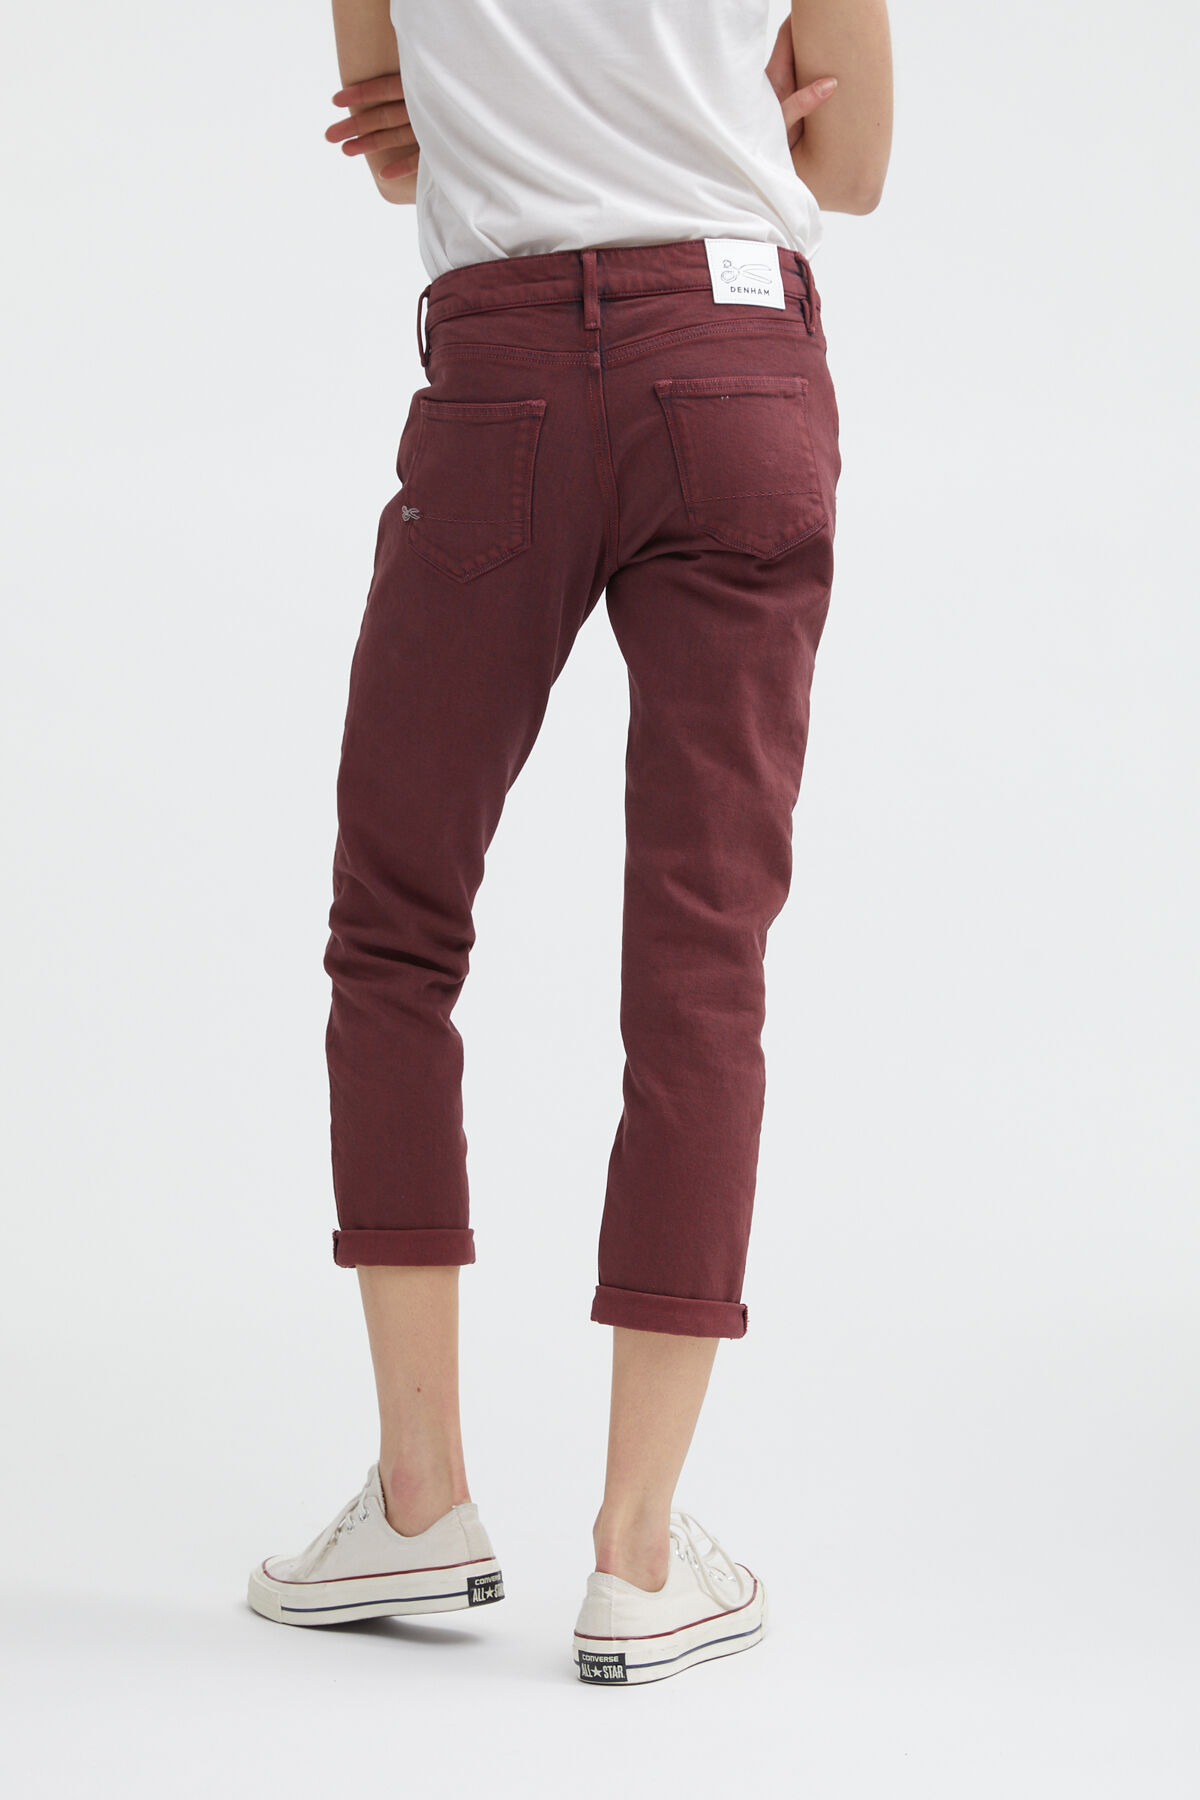 MONROE GOTS Cotton & Recycled Stretch Denim -  Girlfriend Fit